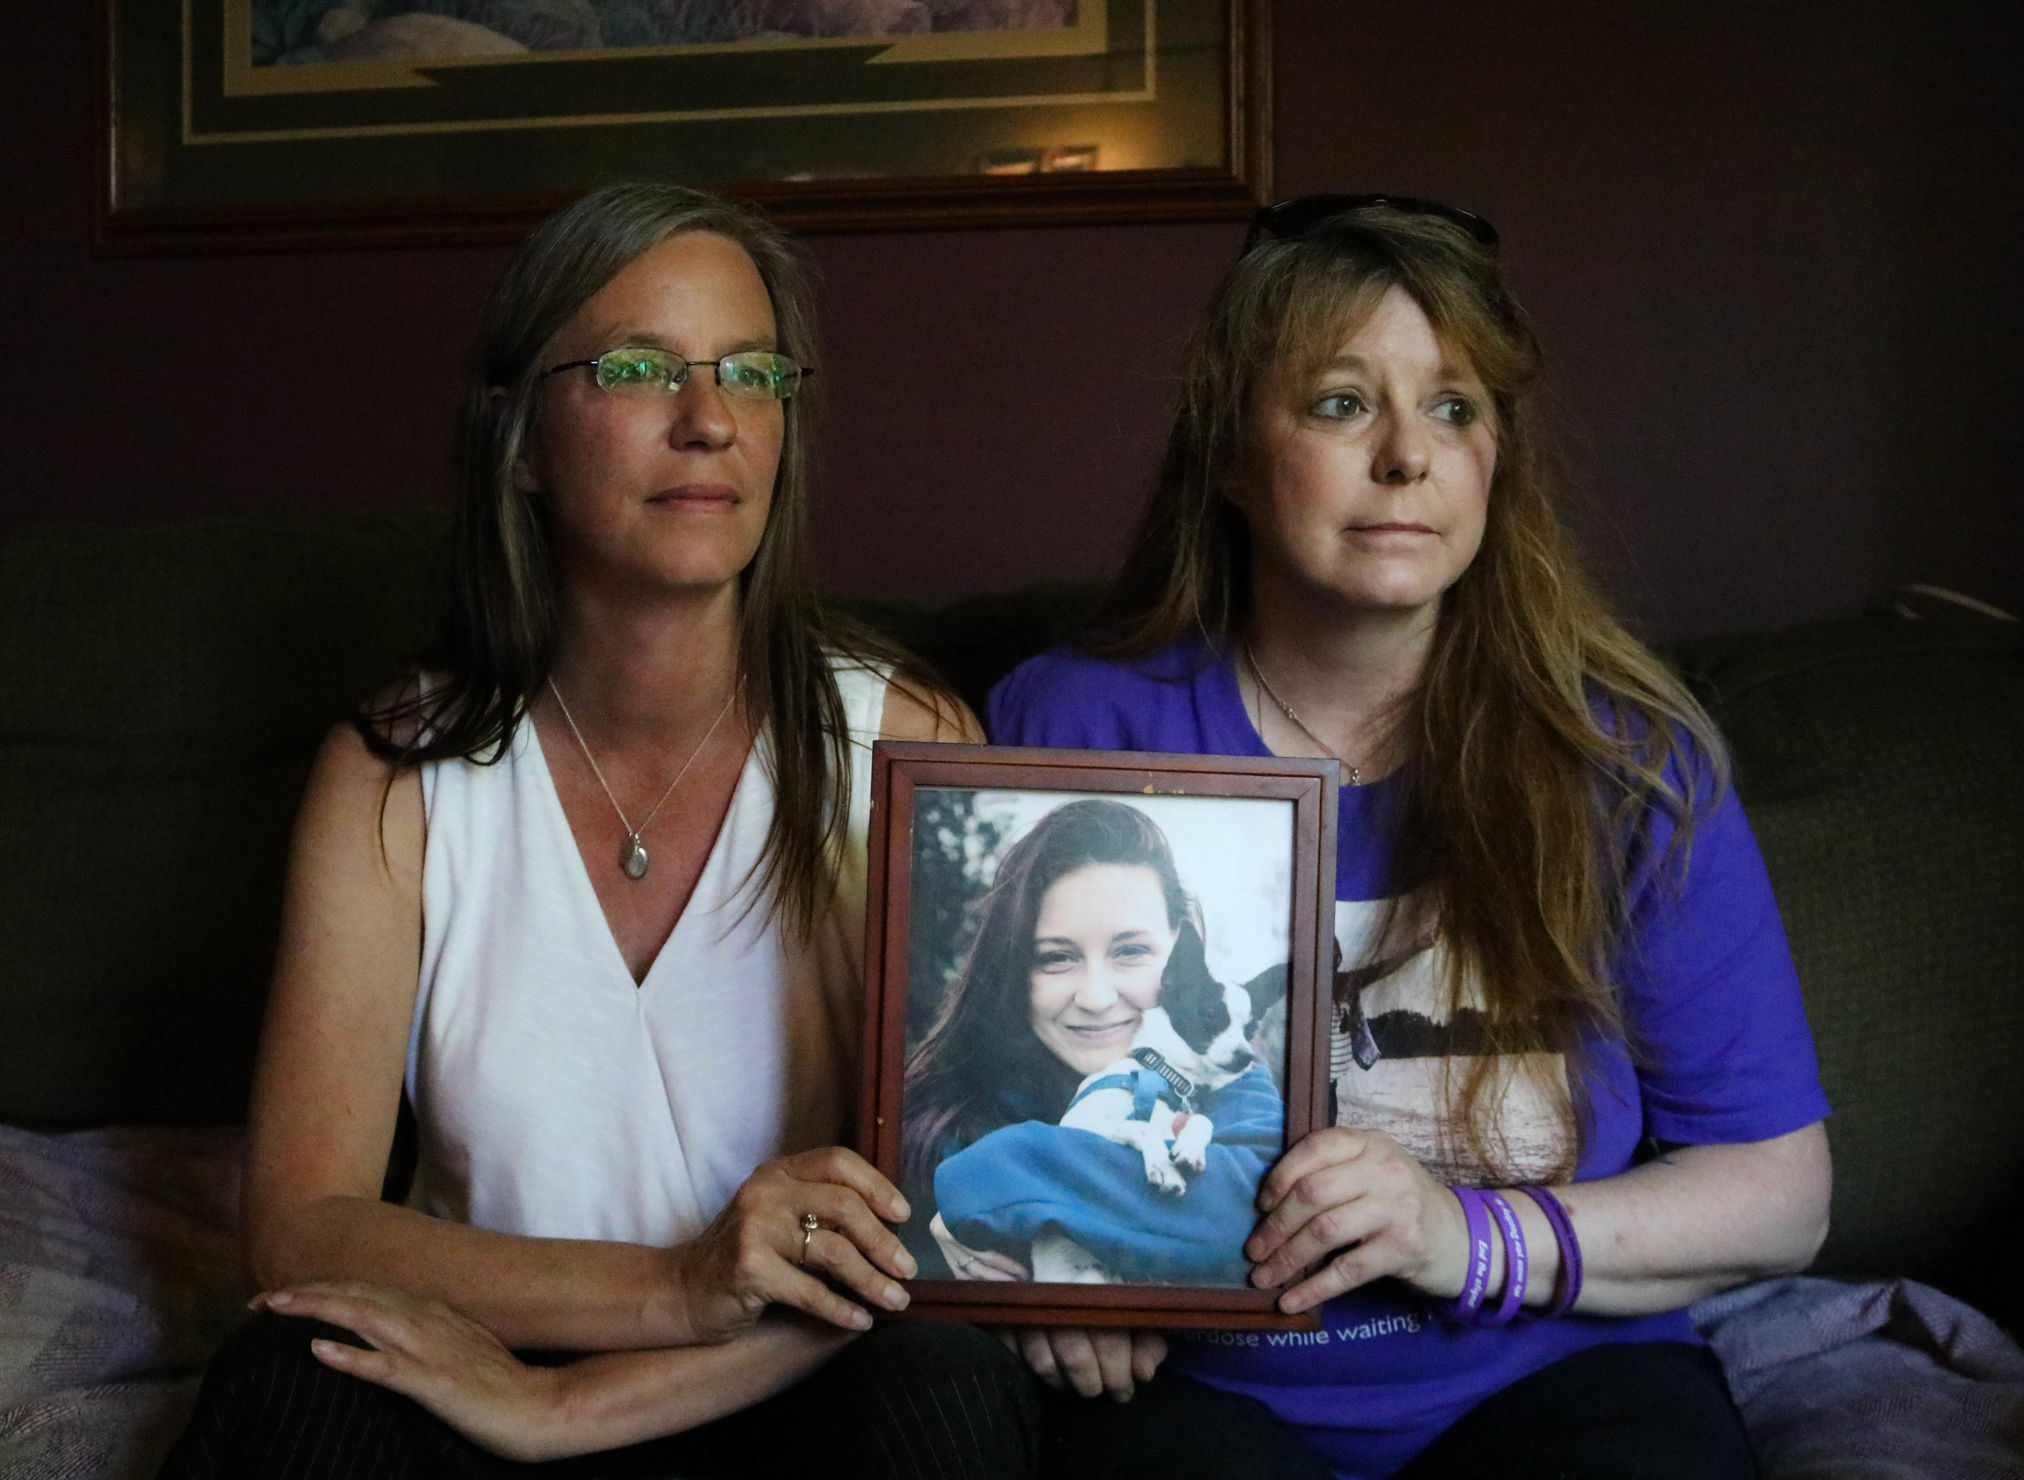 Tammy and Shelly Taillieu with a portrait of Destiny, who died at 22 of an accidental overdose.